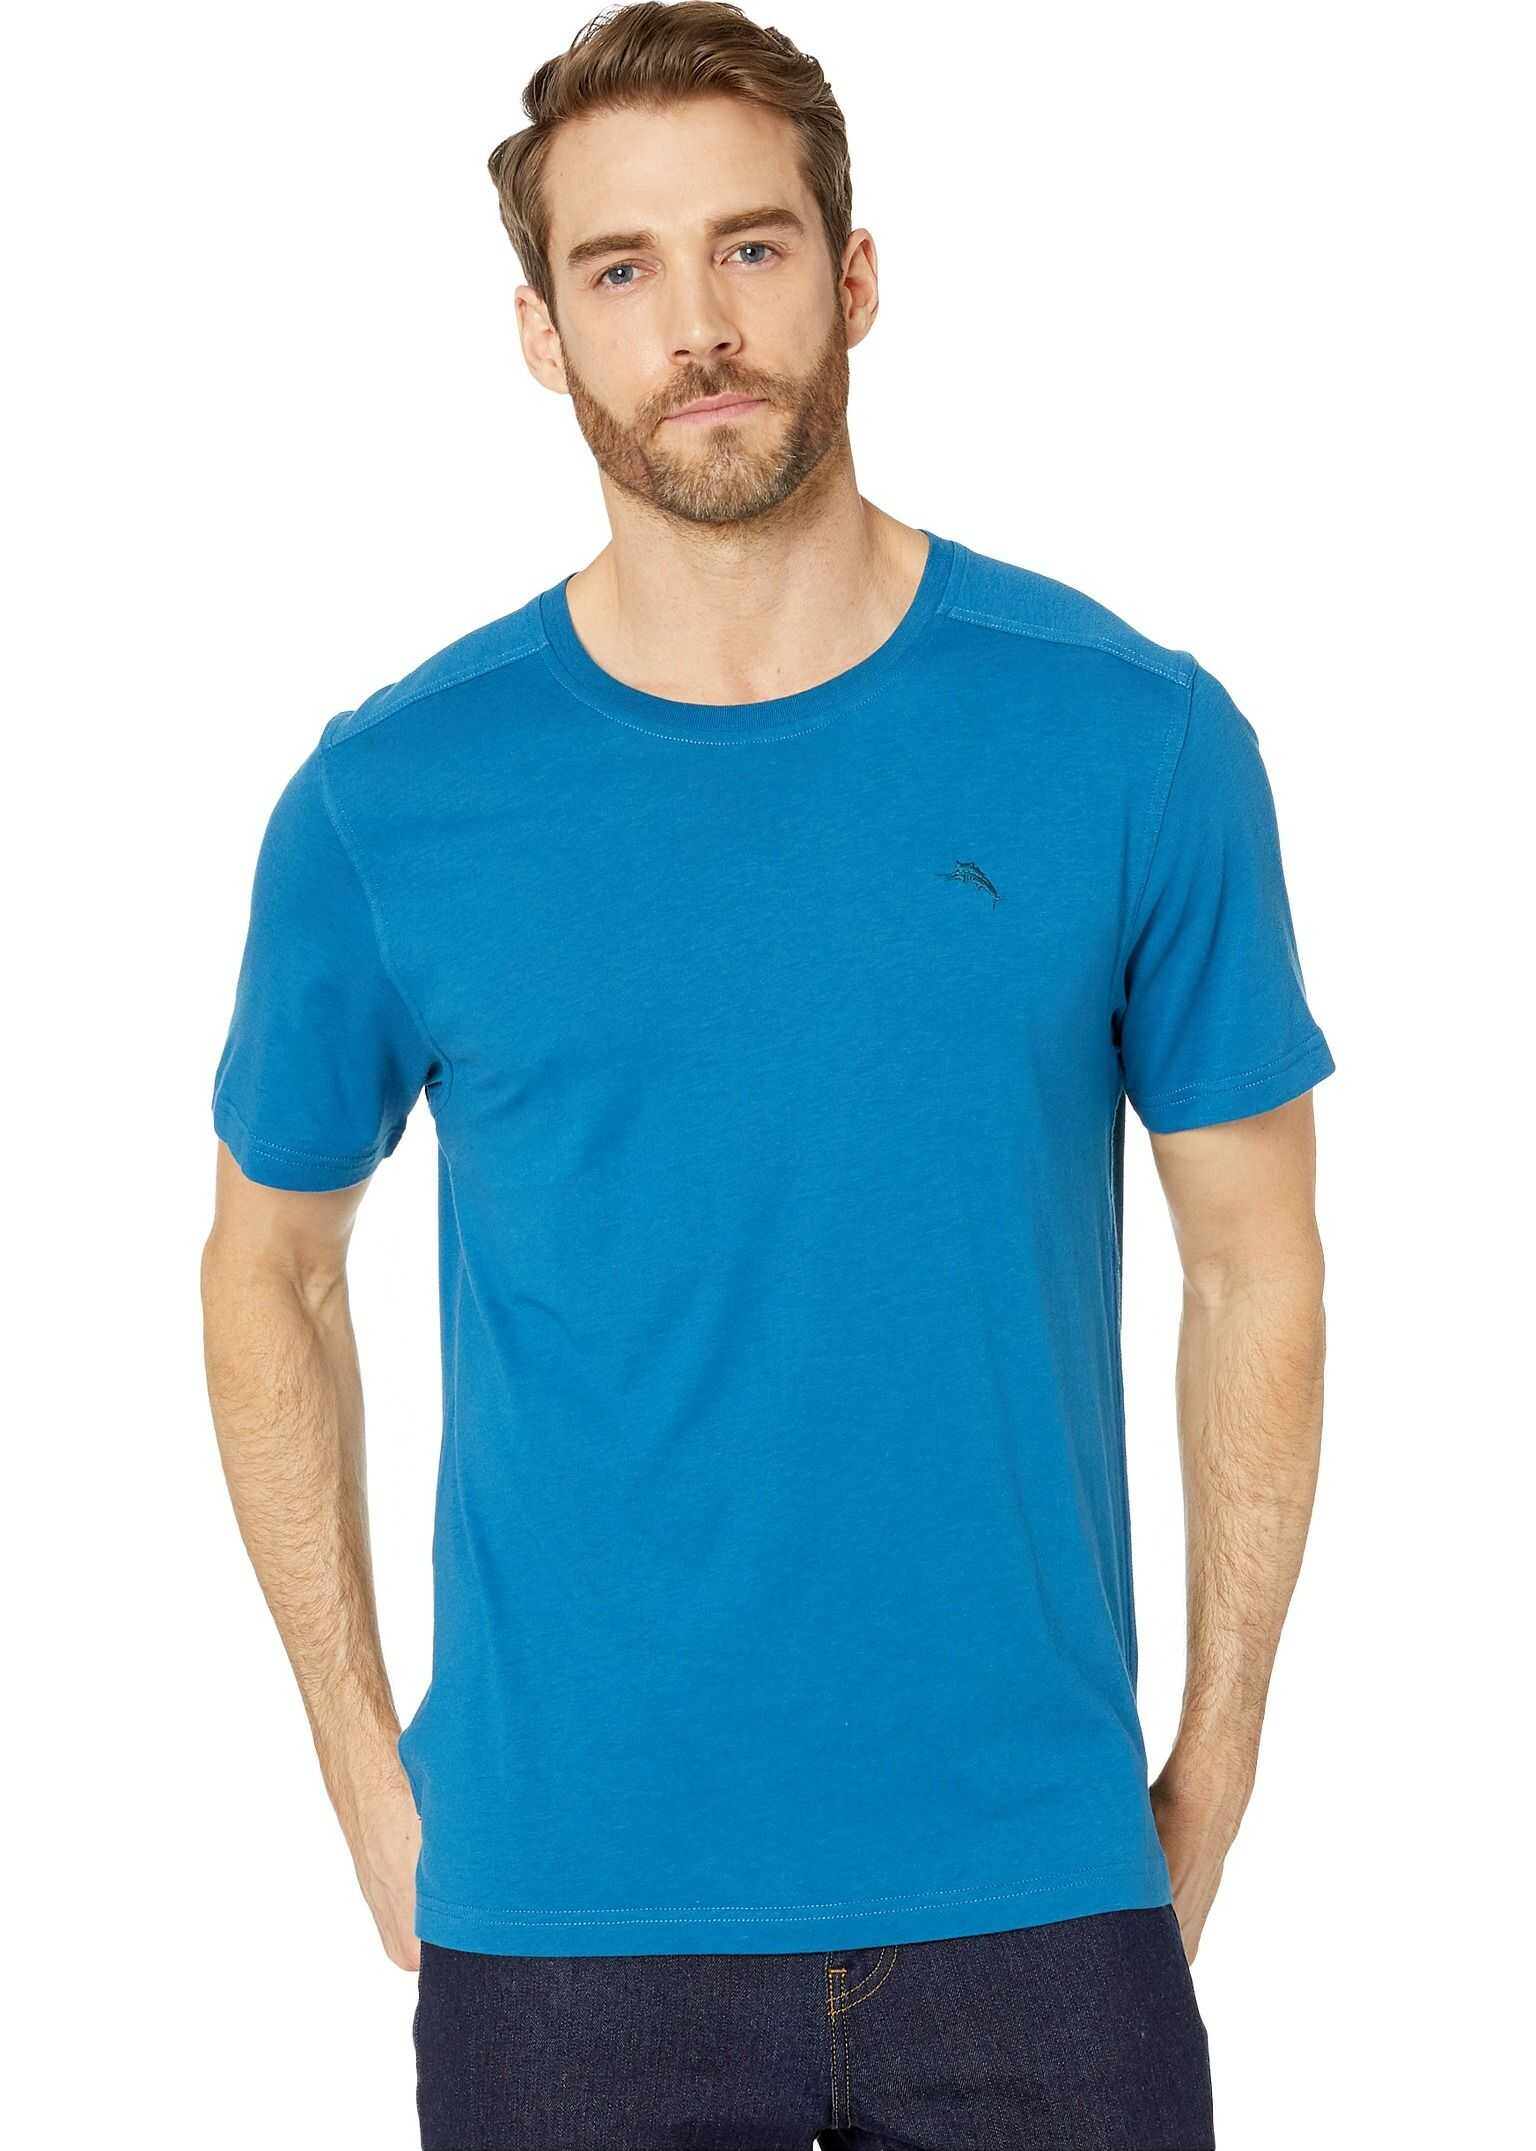 Tommy Bahama Cotton Modal Knit Jersey T-Shirt Blue/Allure